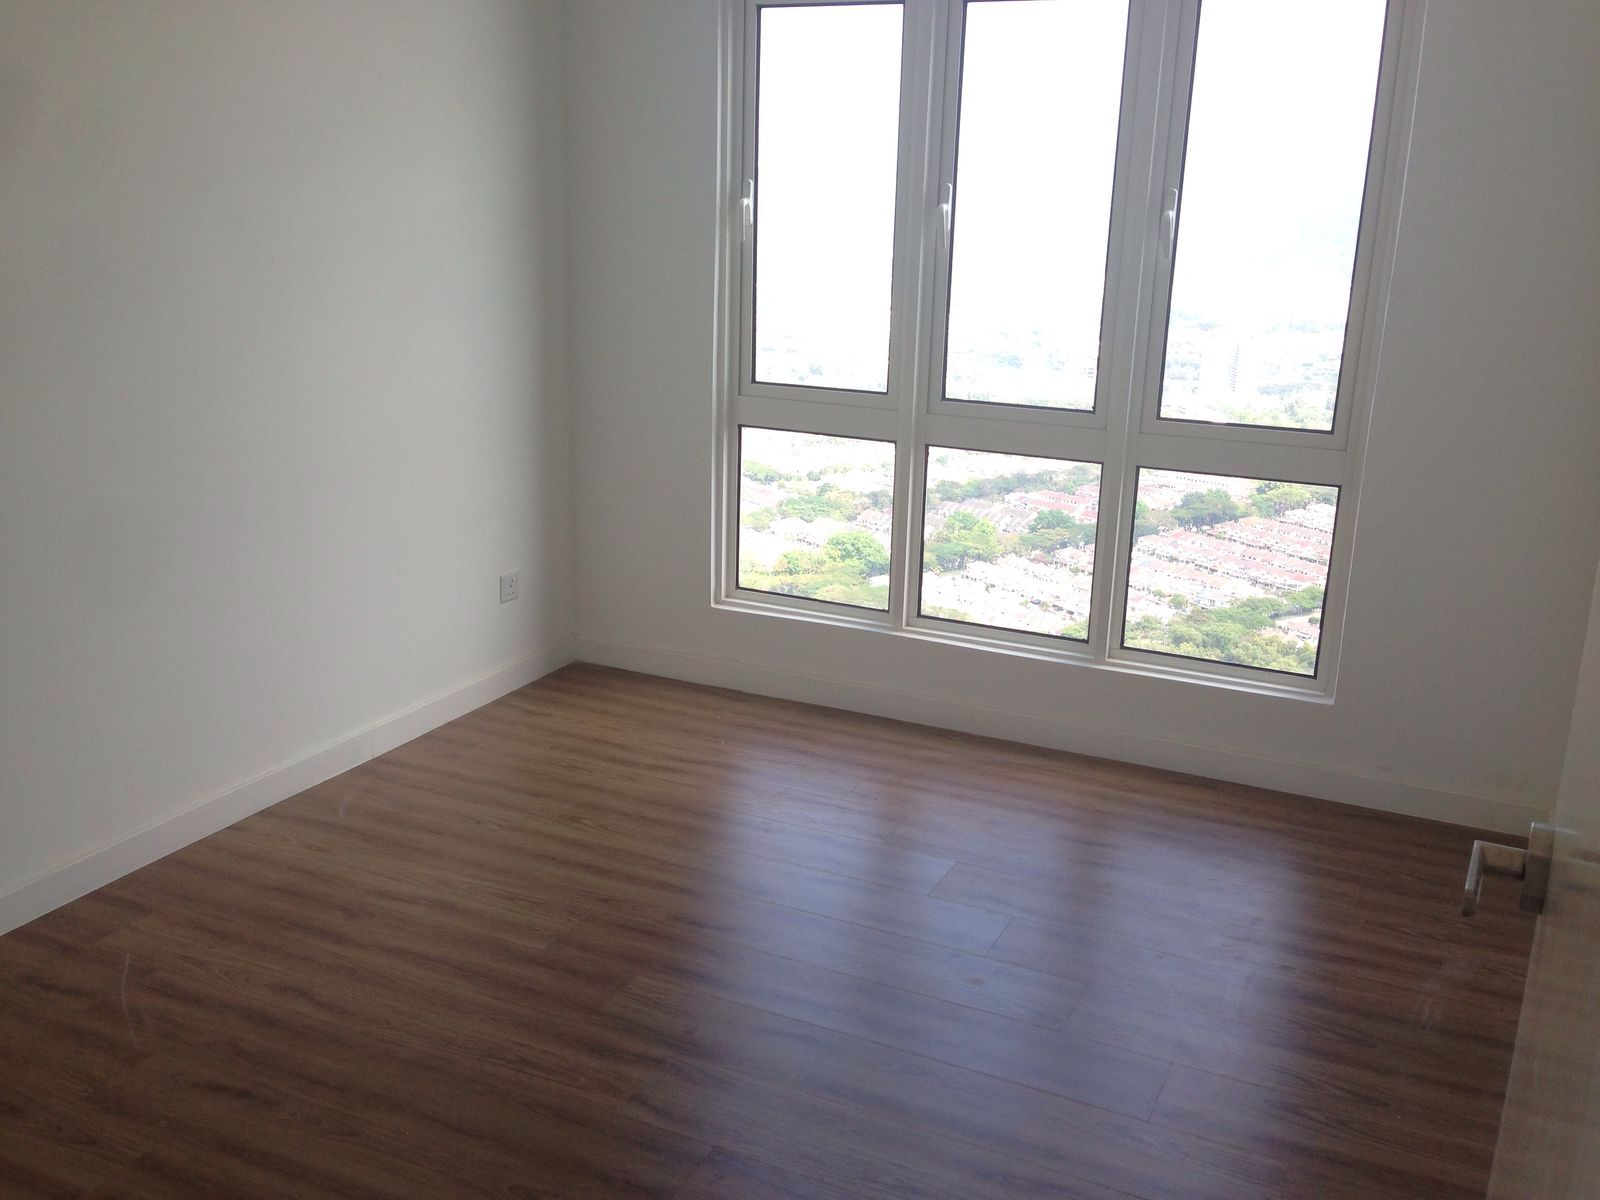 Foresta Sri Damansara for RENT 1,497sq.ft. for RM2,000